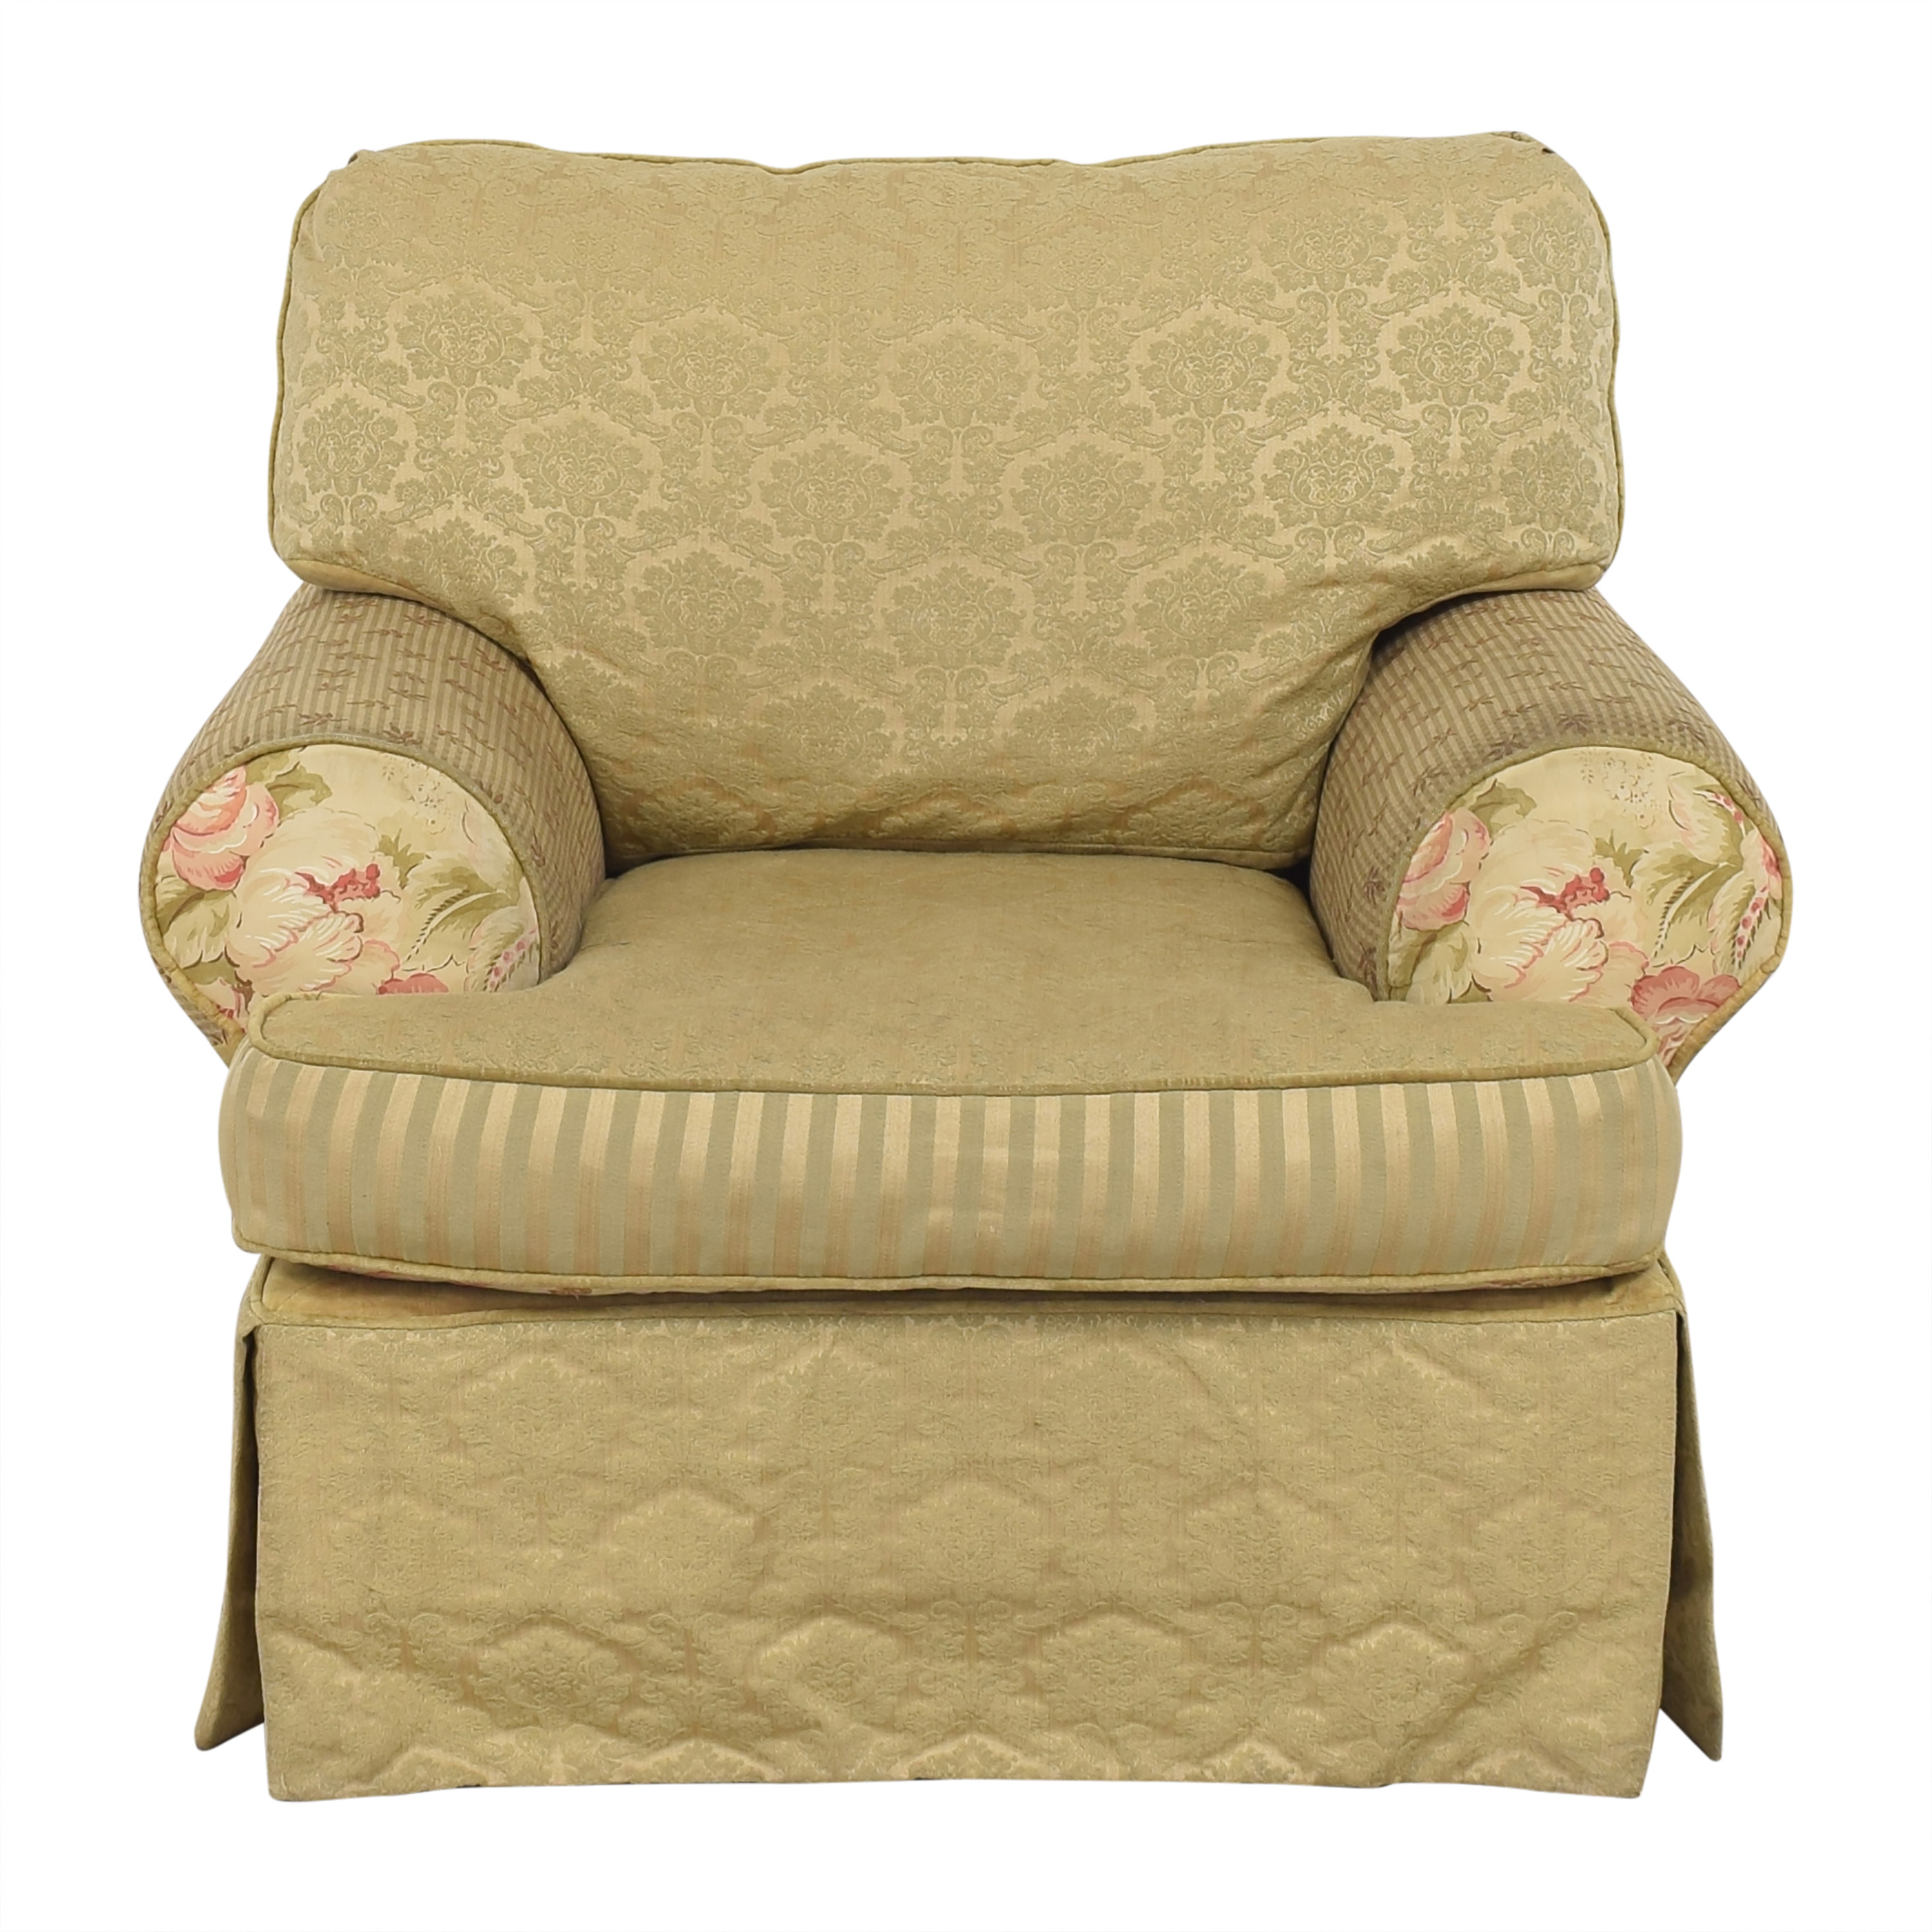 Alexvale Alexvale Floral Accent Chair coupon